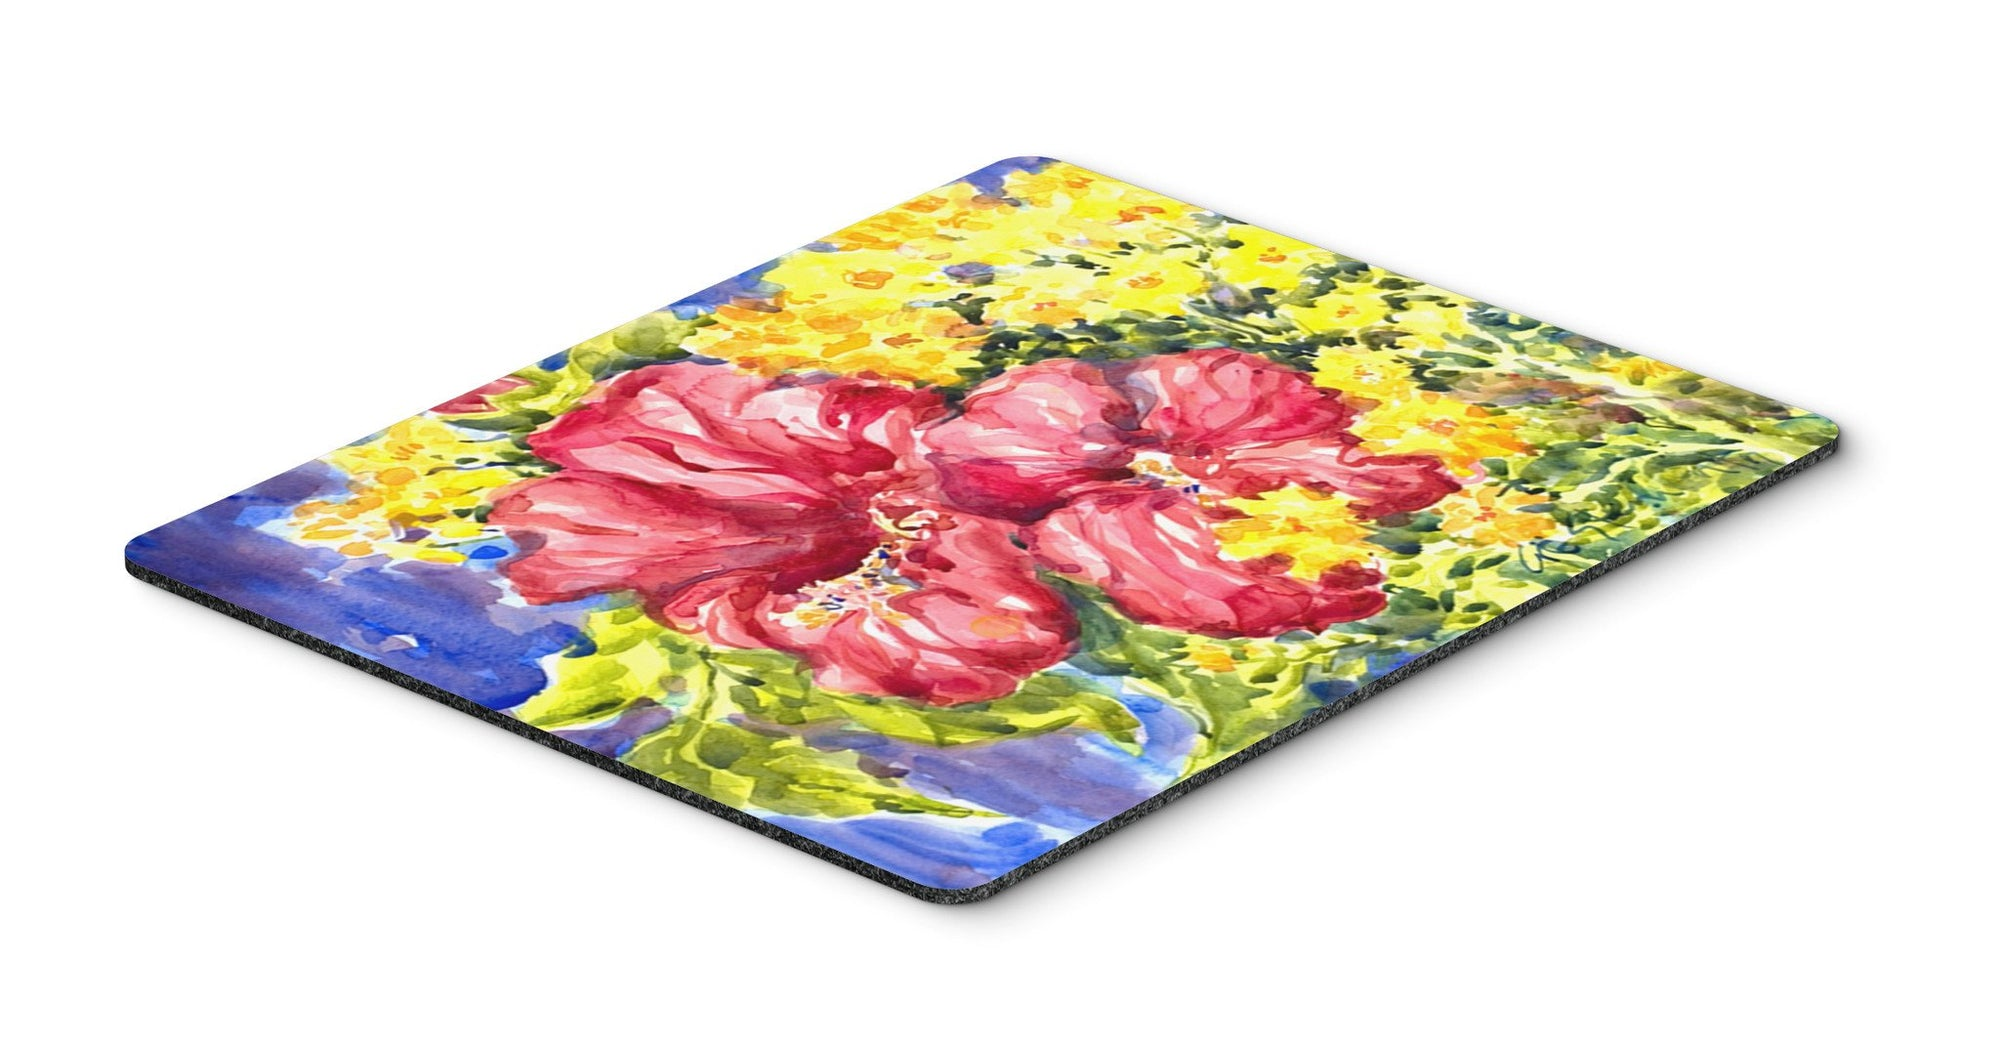 Flower - Hibiscus Mouse pad, hot pad, or trivet by Caroline's Treasures